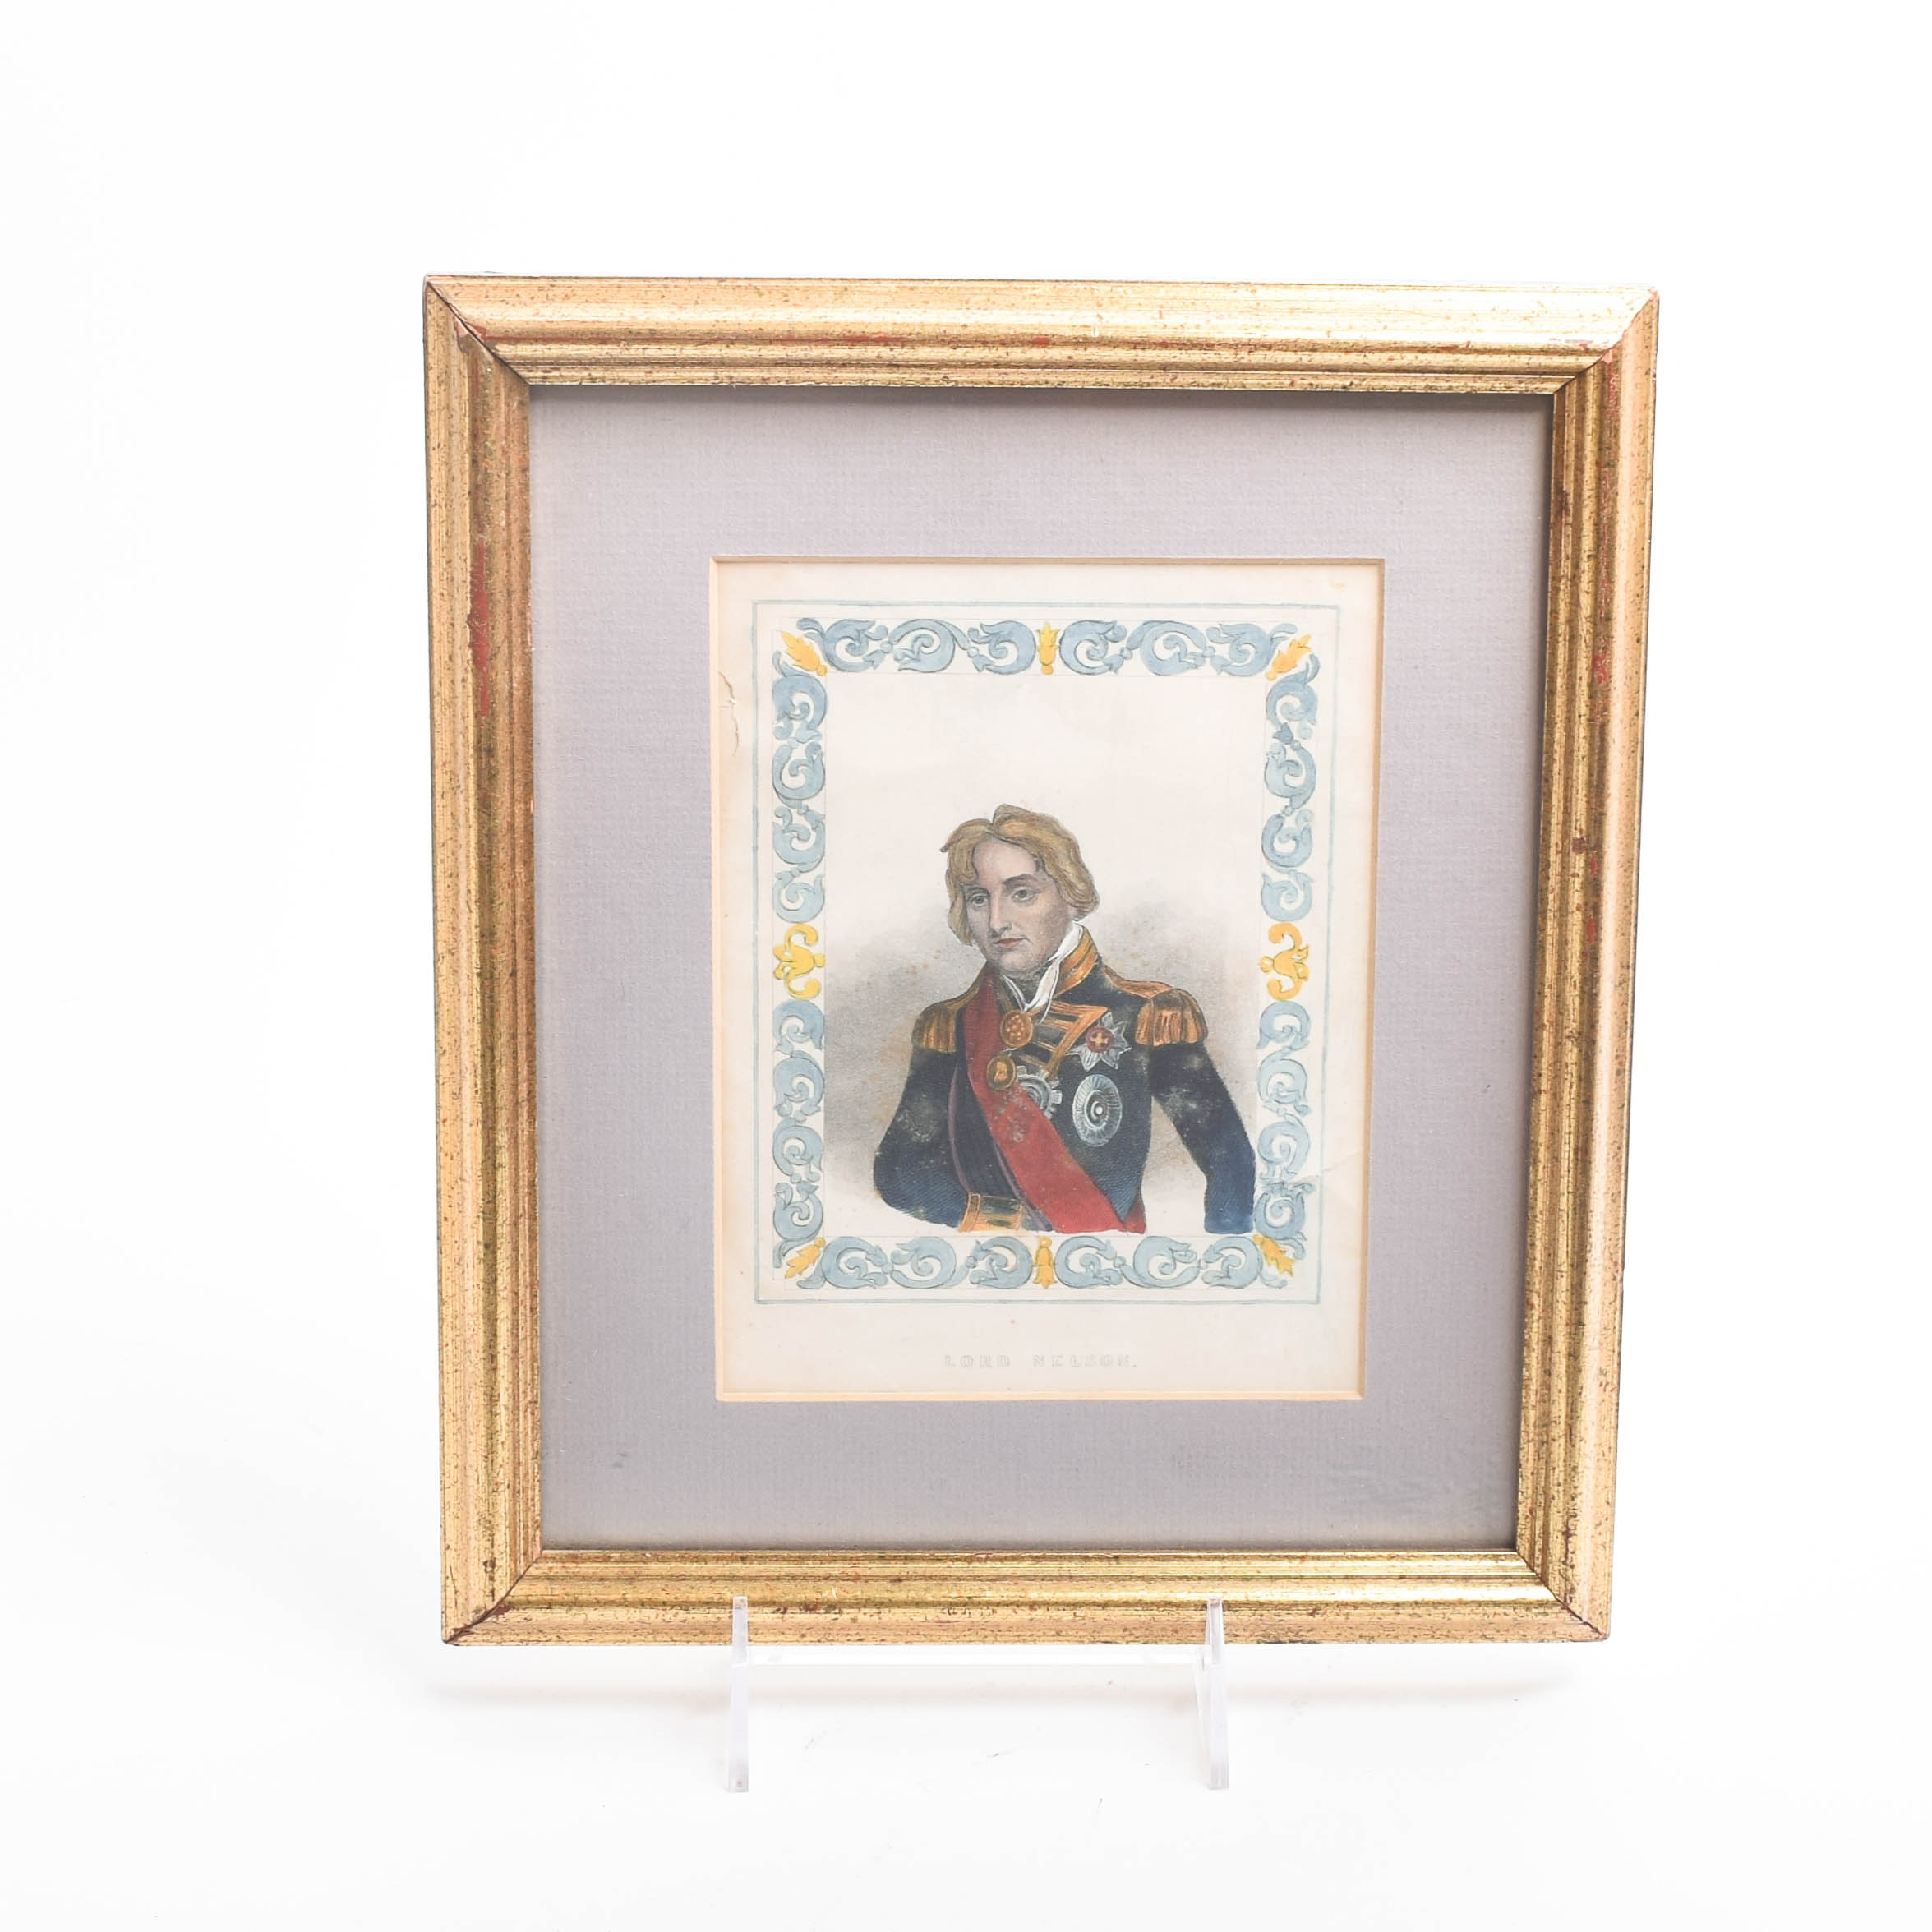 Antique Colored Engraving on Paper of Lord Nelson